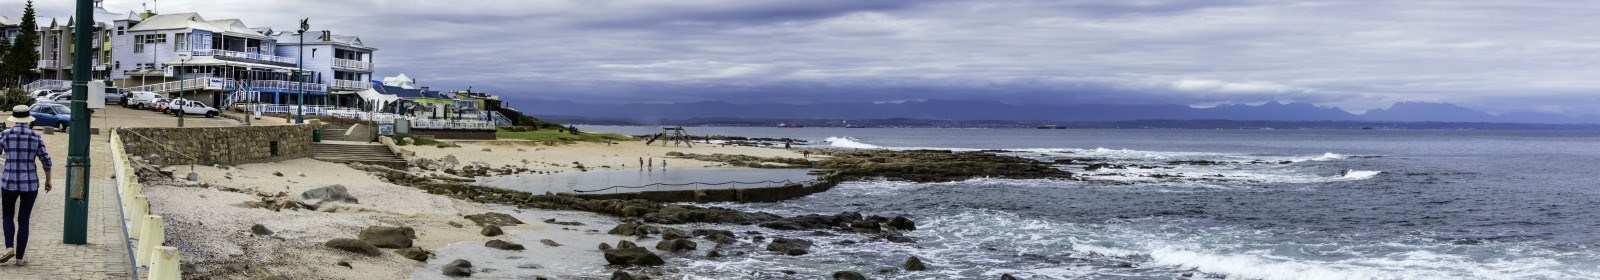 A visitor's guide to Mossel Bay